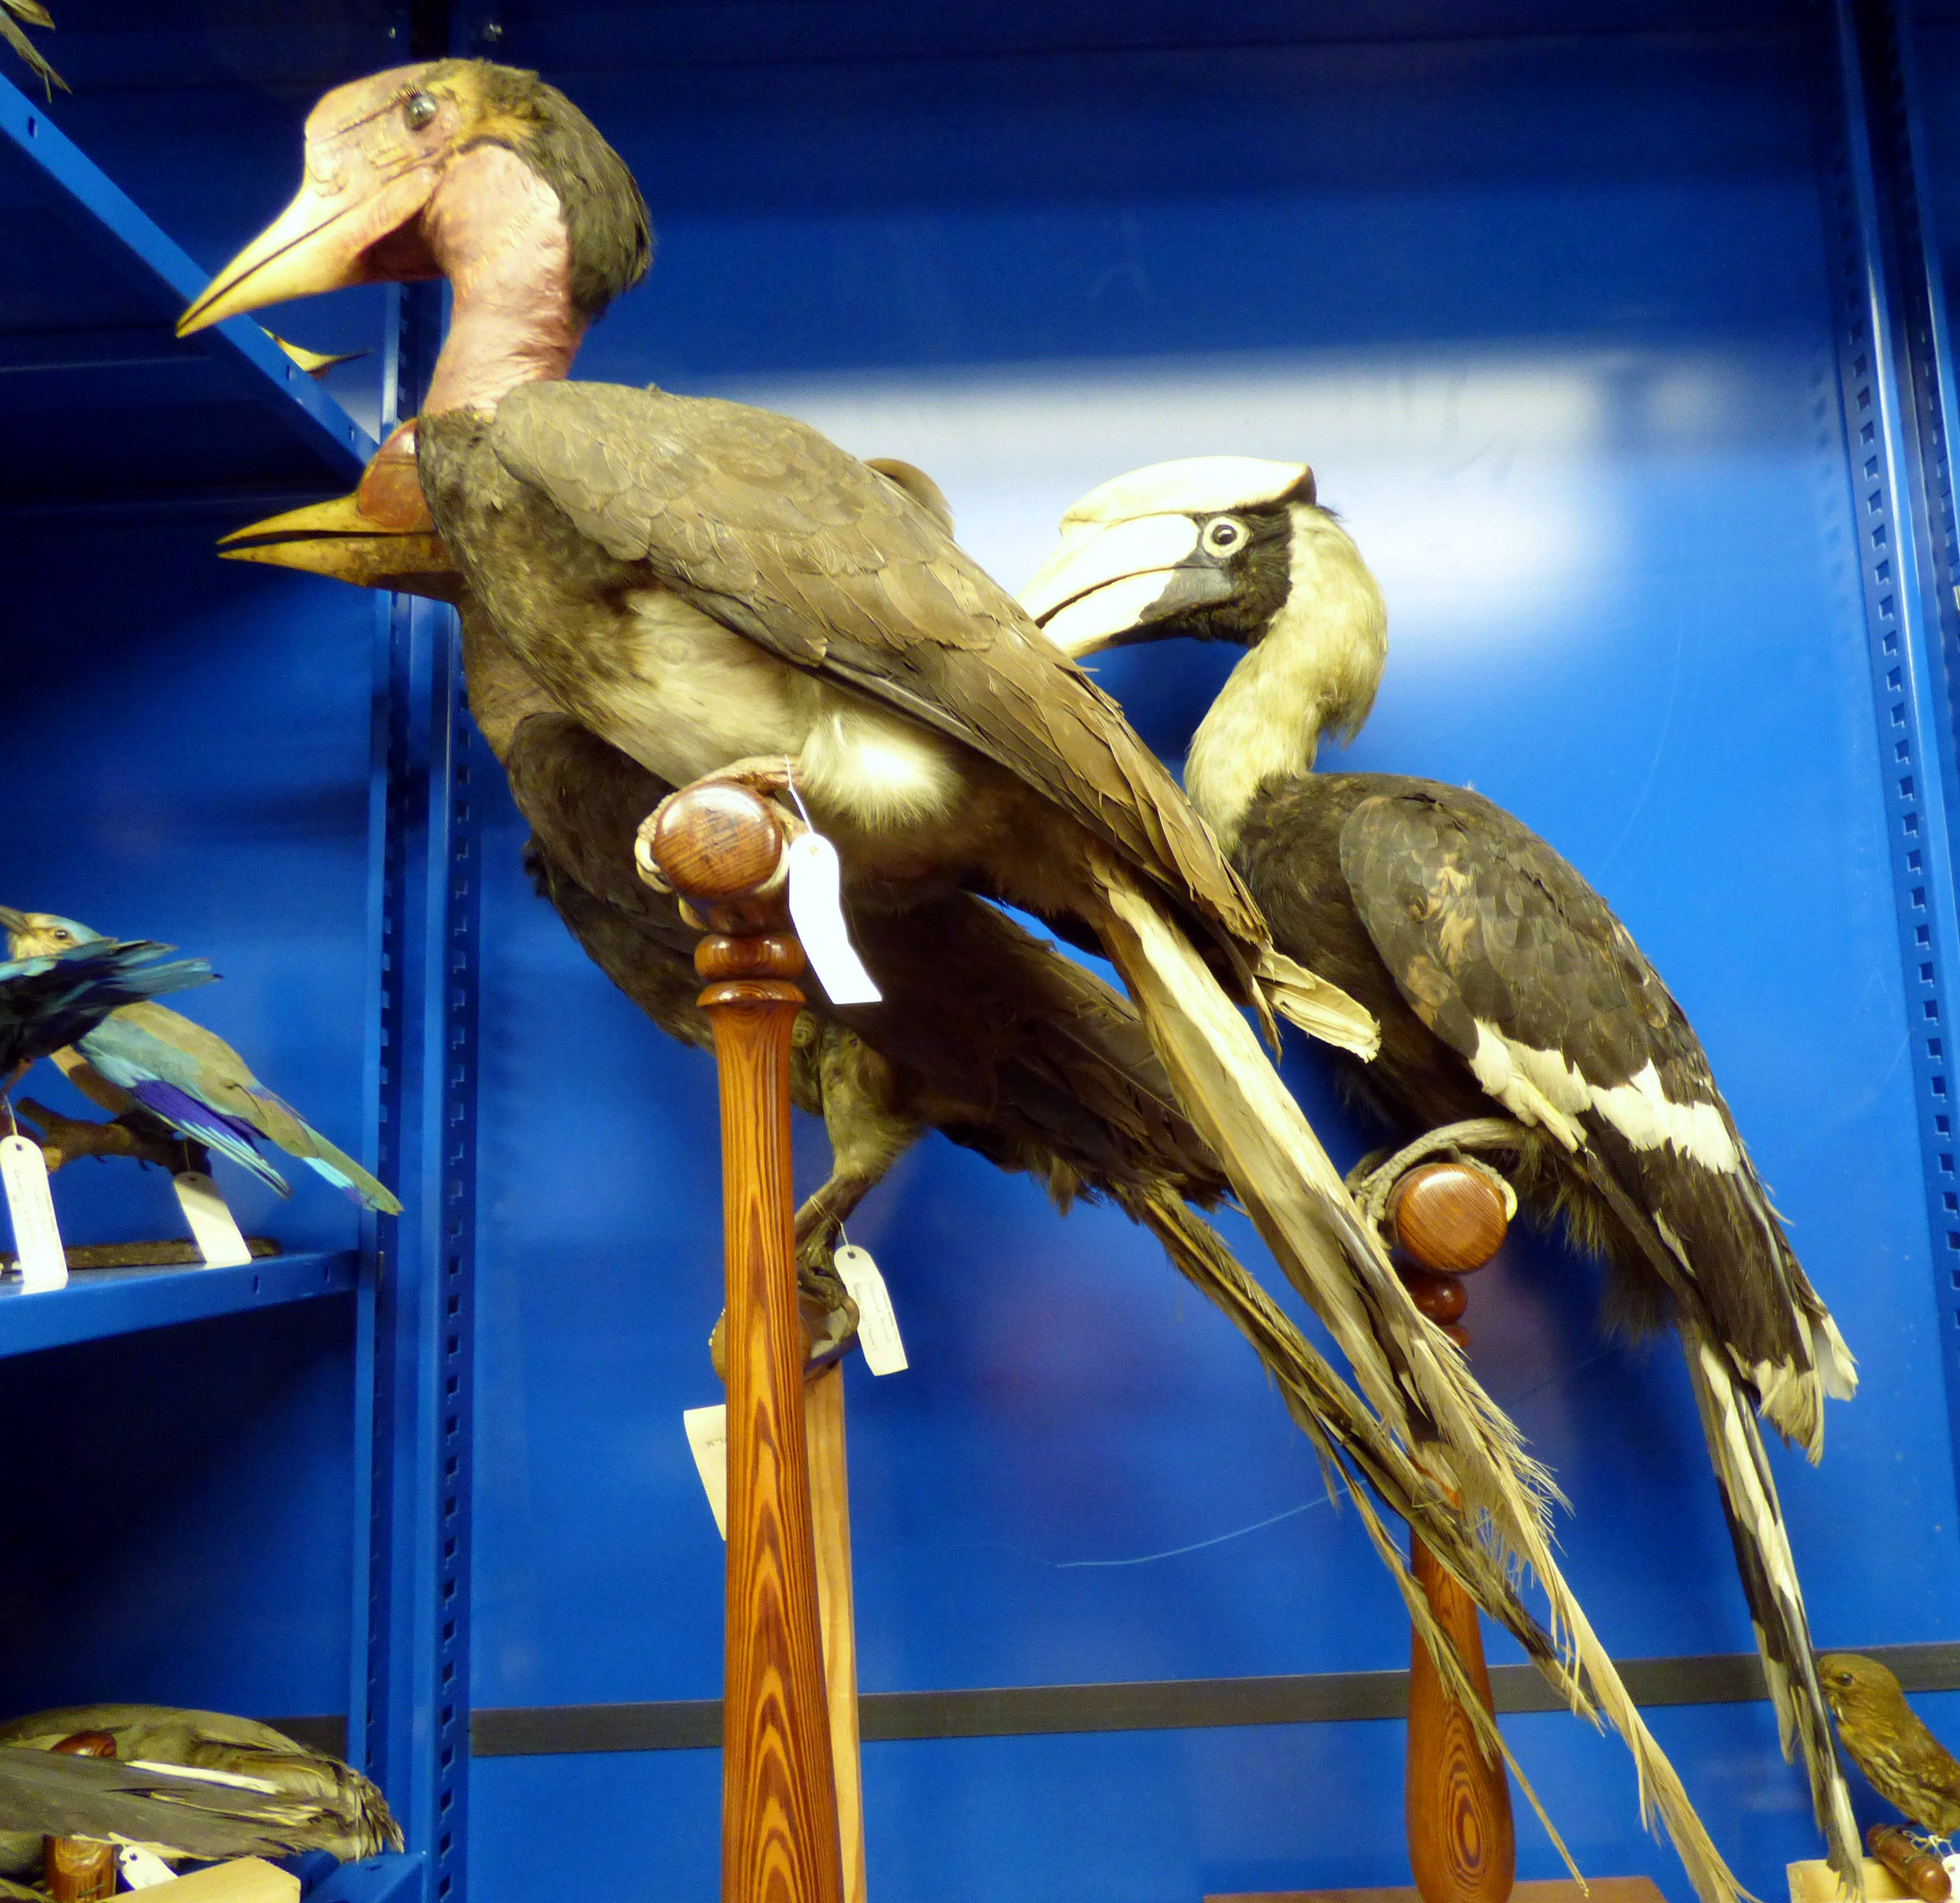 Taxidermy, Helmeted Hornbill, MEG behind the scenes tour at Liverpool World Museum, 2018